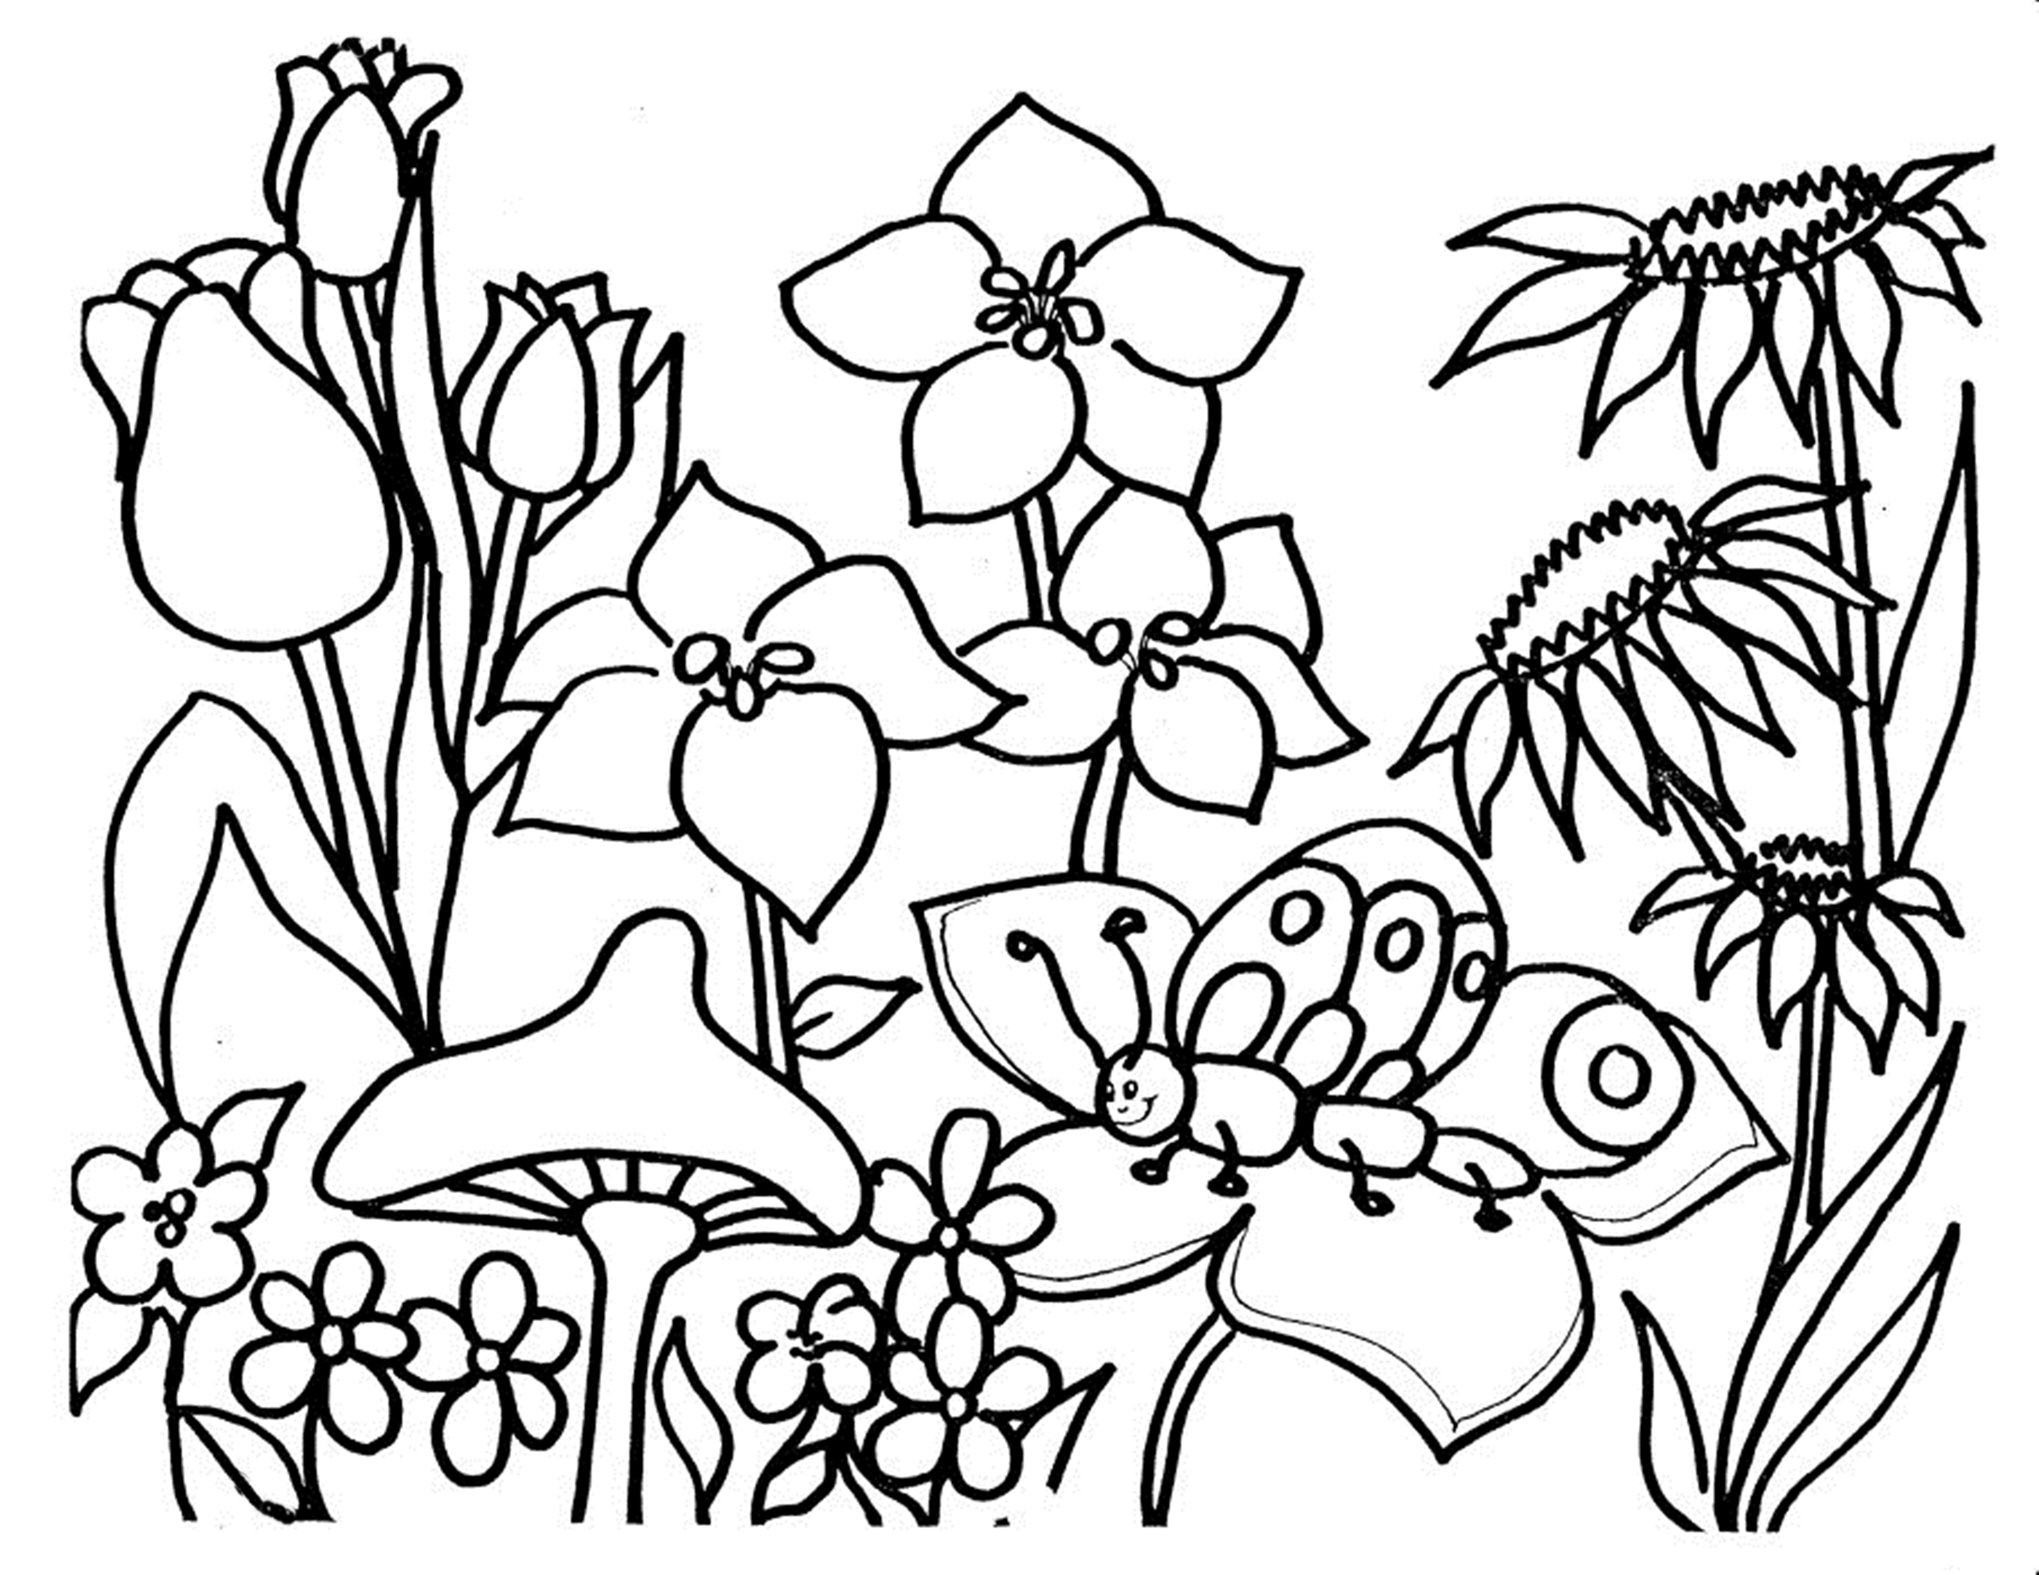 pictures of flowers to color free printable flower coloring pages for kids best flowers to color of pictures